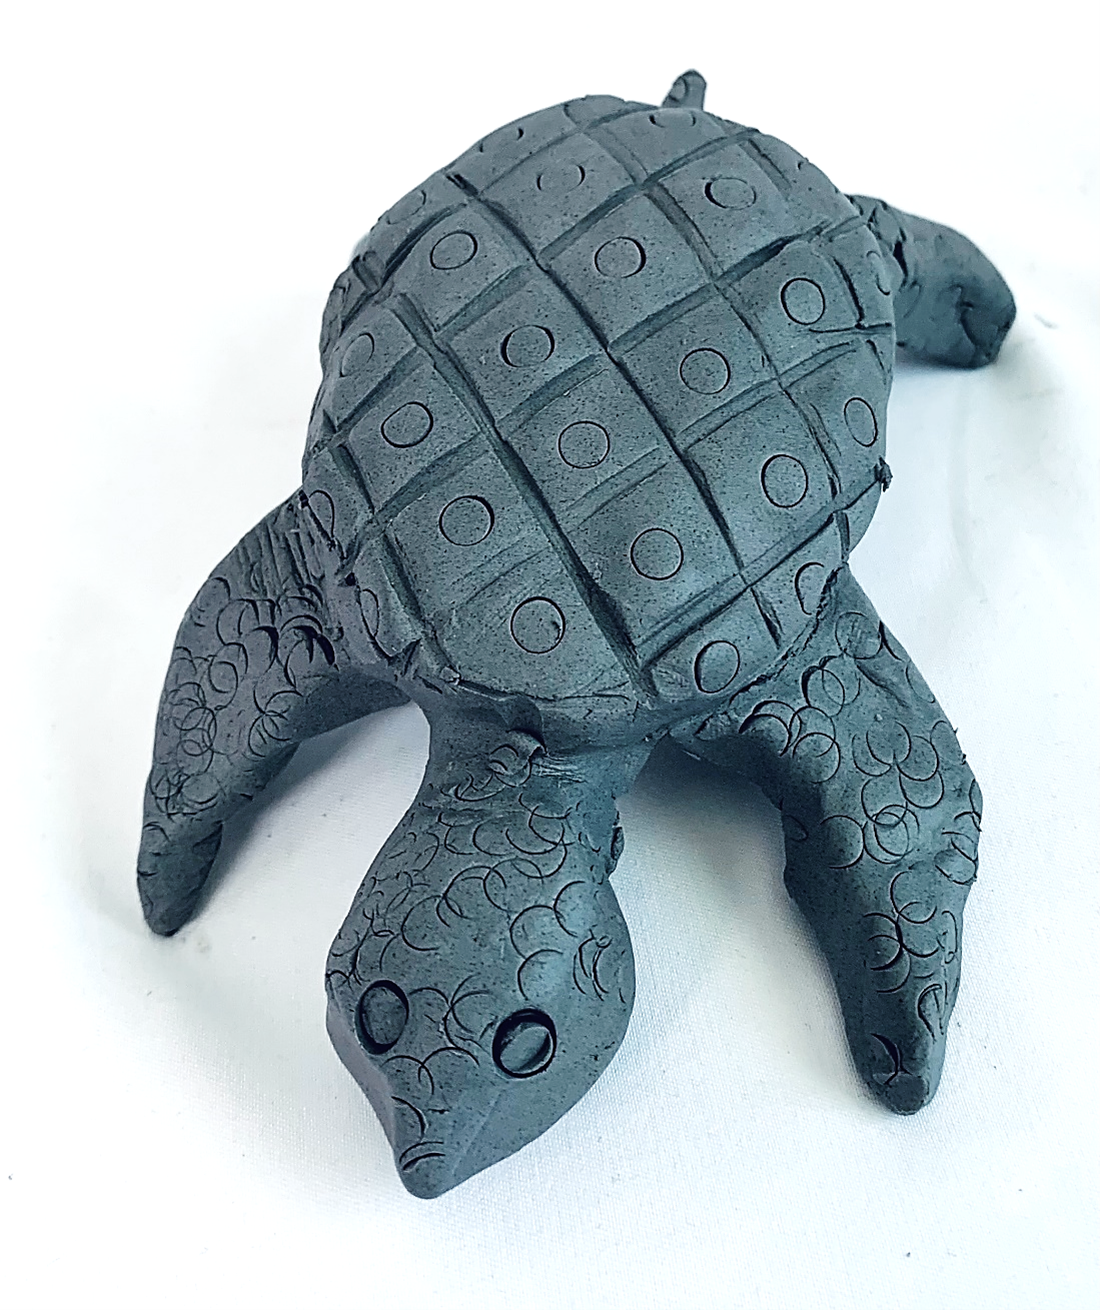 A completed clay turtle from this week's prject.